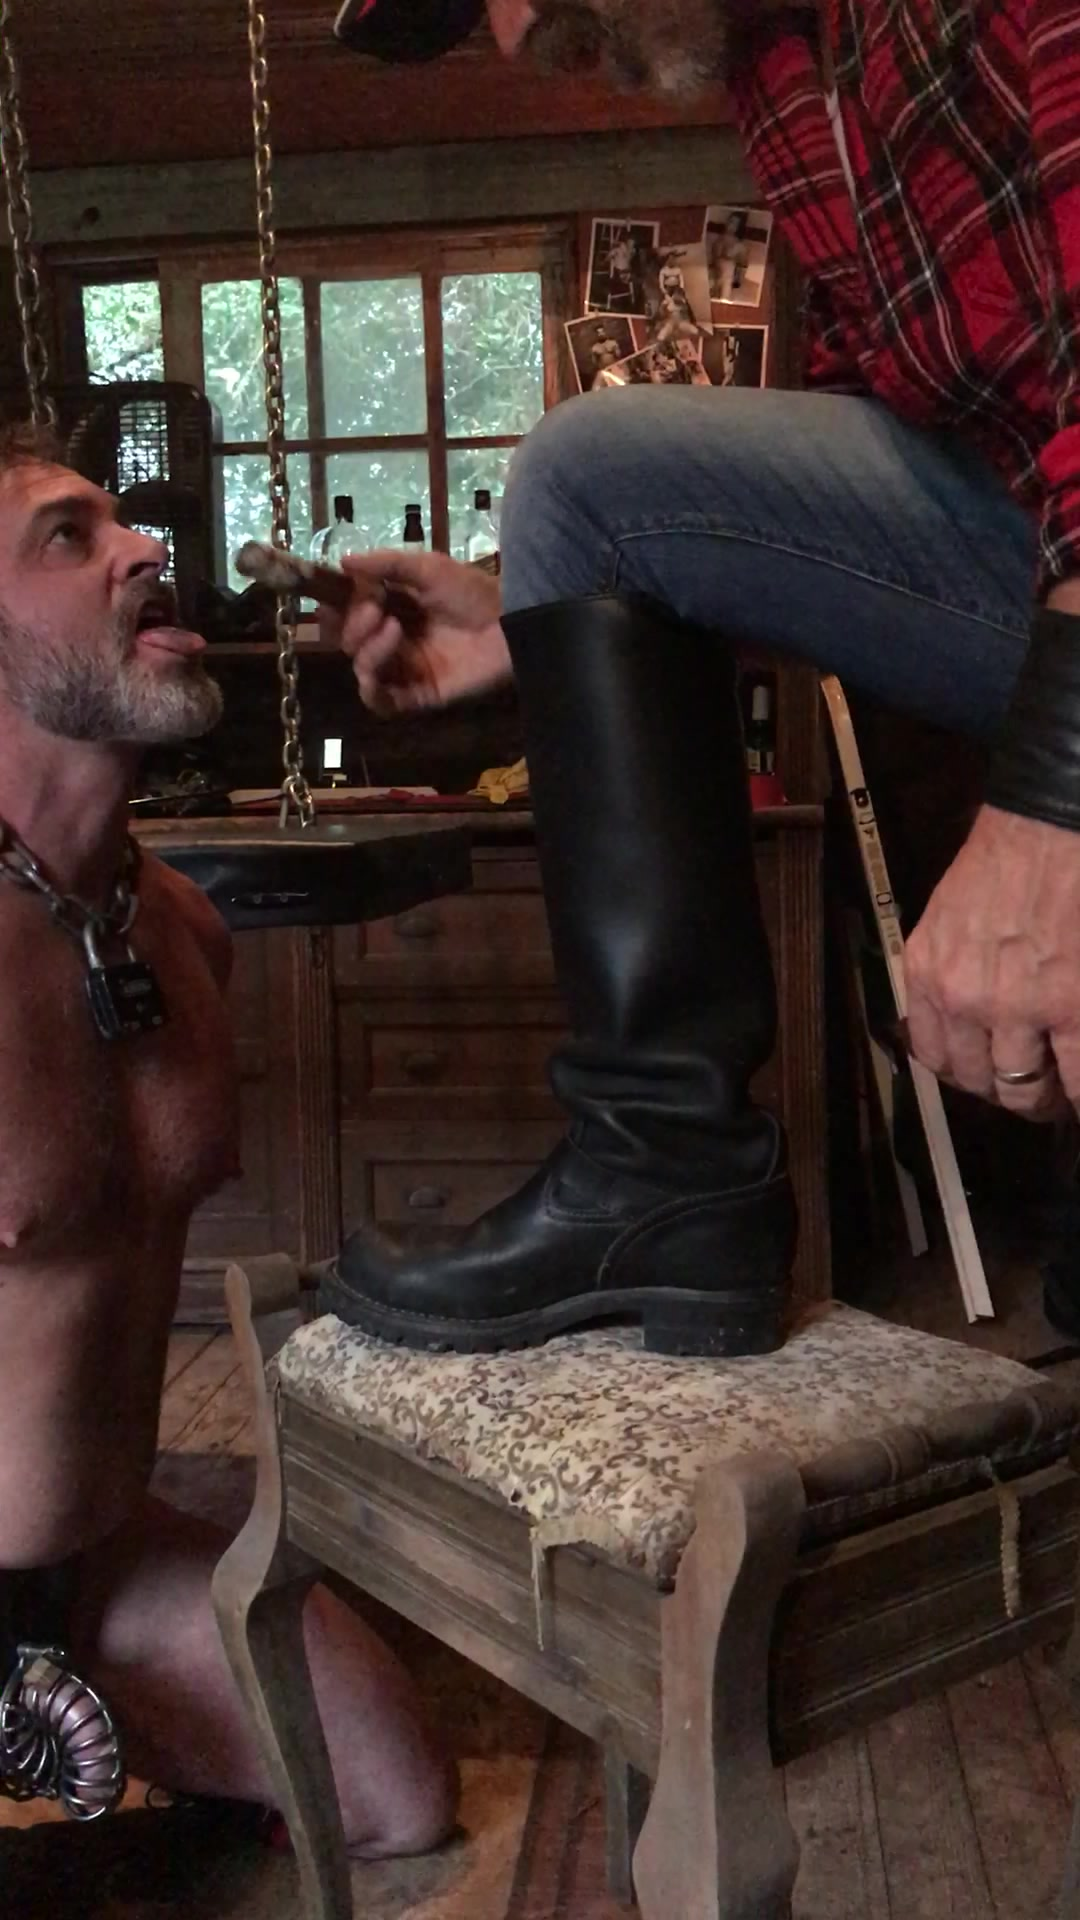 Grunt licking boots